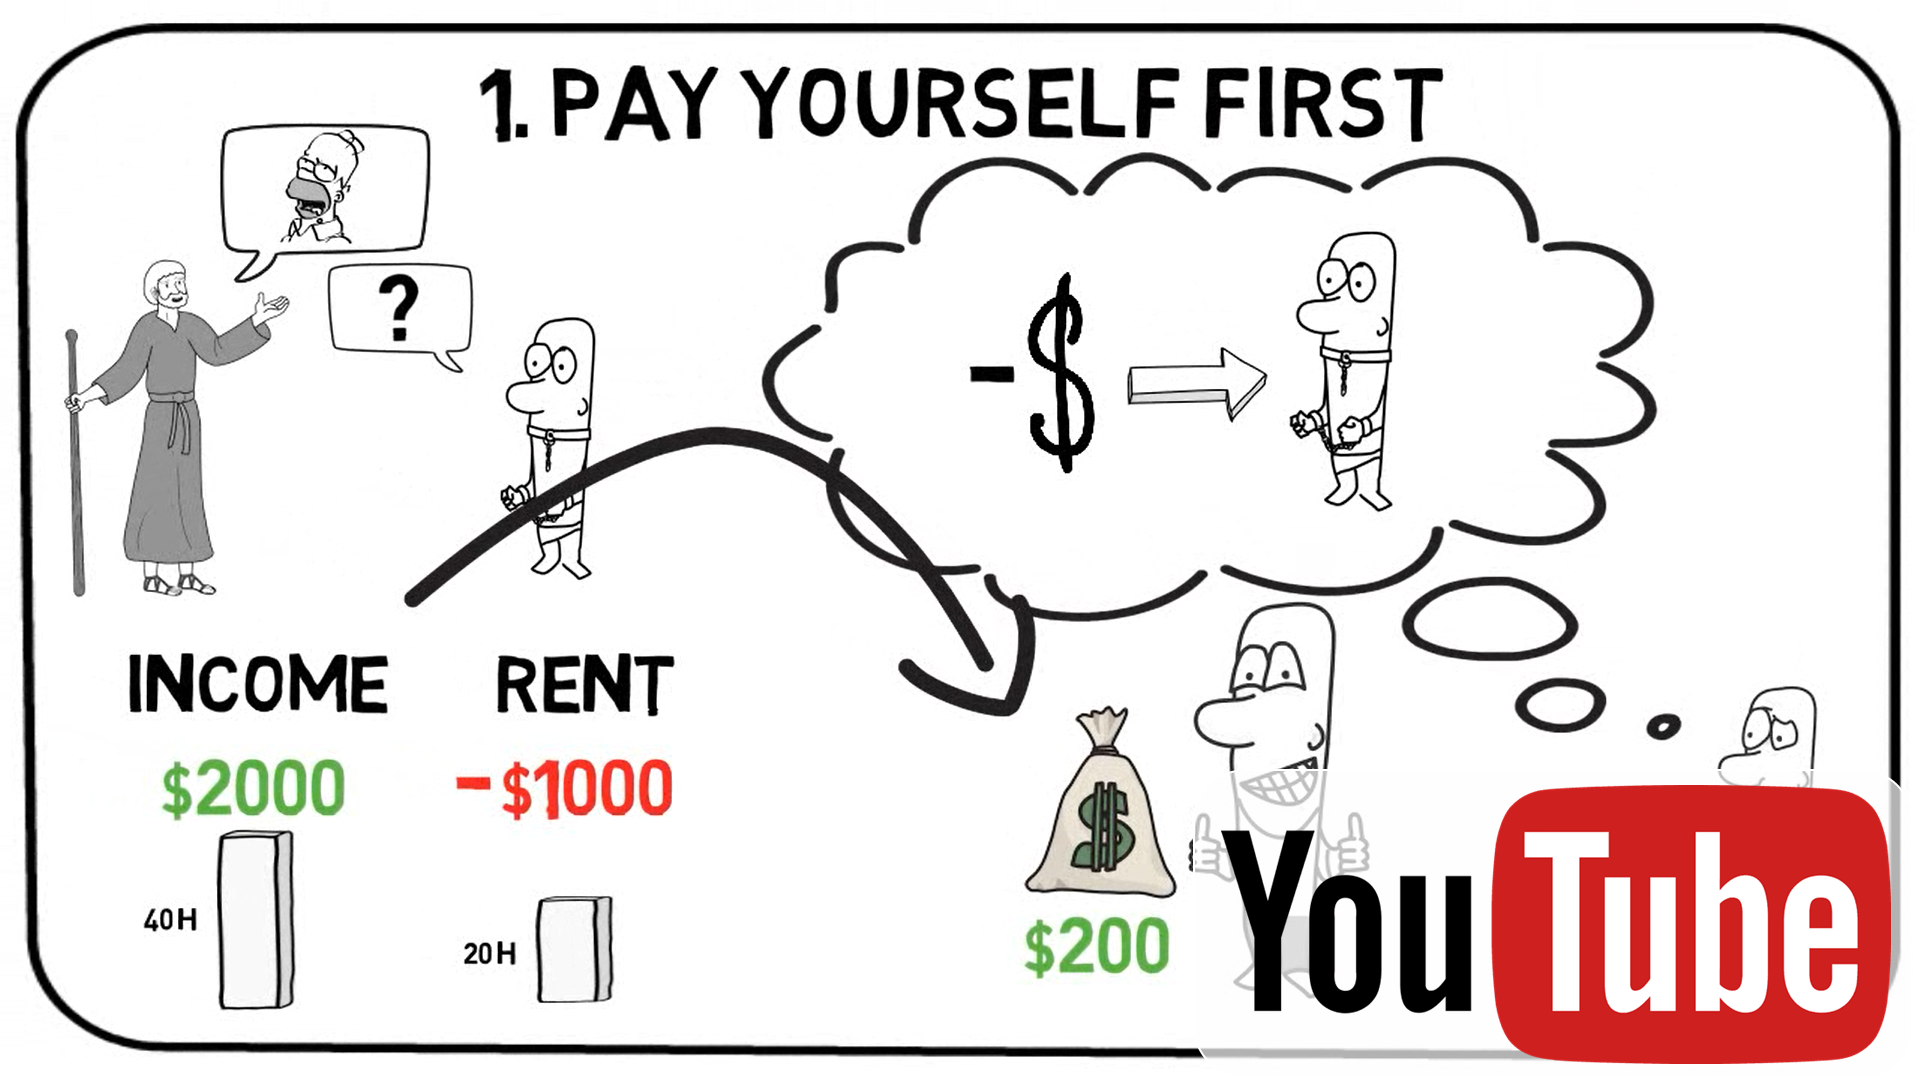 pay yourself first investing investing for beginners investing money investing in your 20s investing in your 30s saving money ideas saving money tips  [ 1915 x 1081 Pixel ]